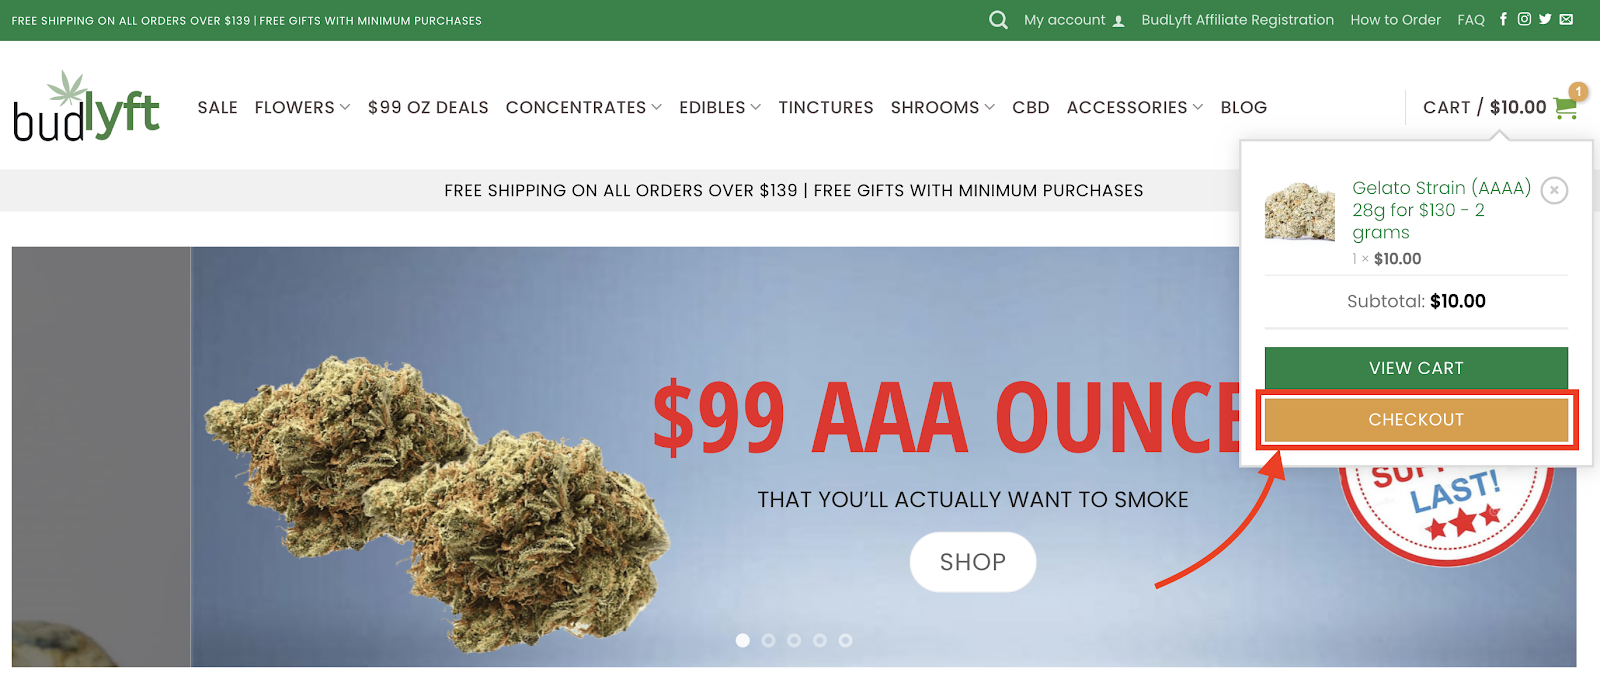 Buy Weed Online - How to Get to Checkout